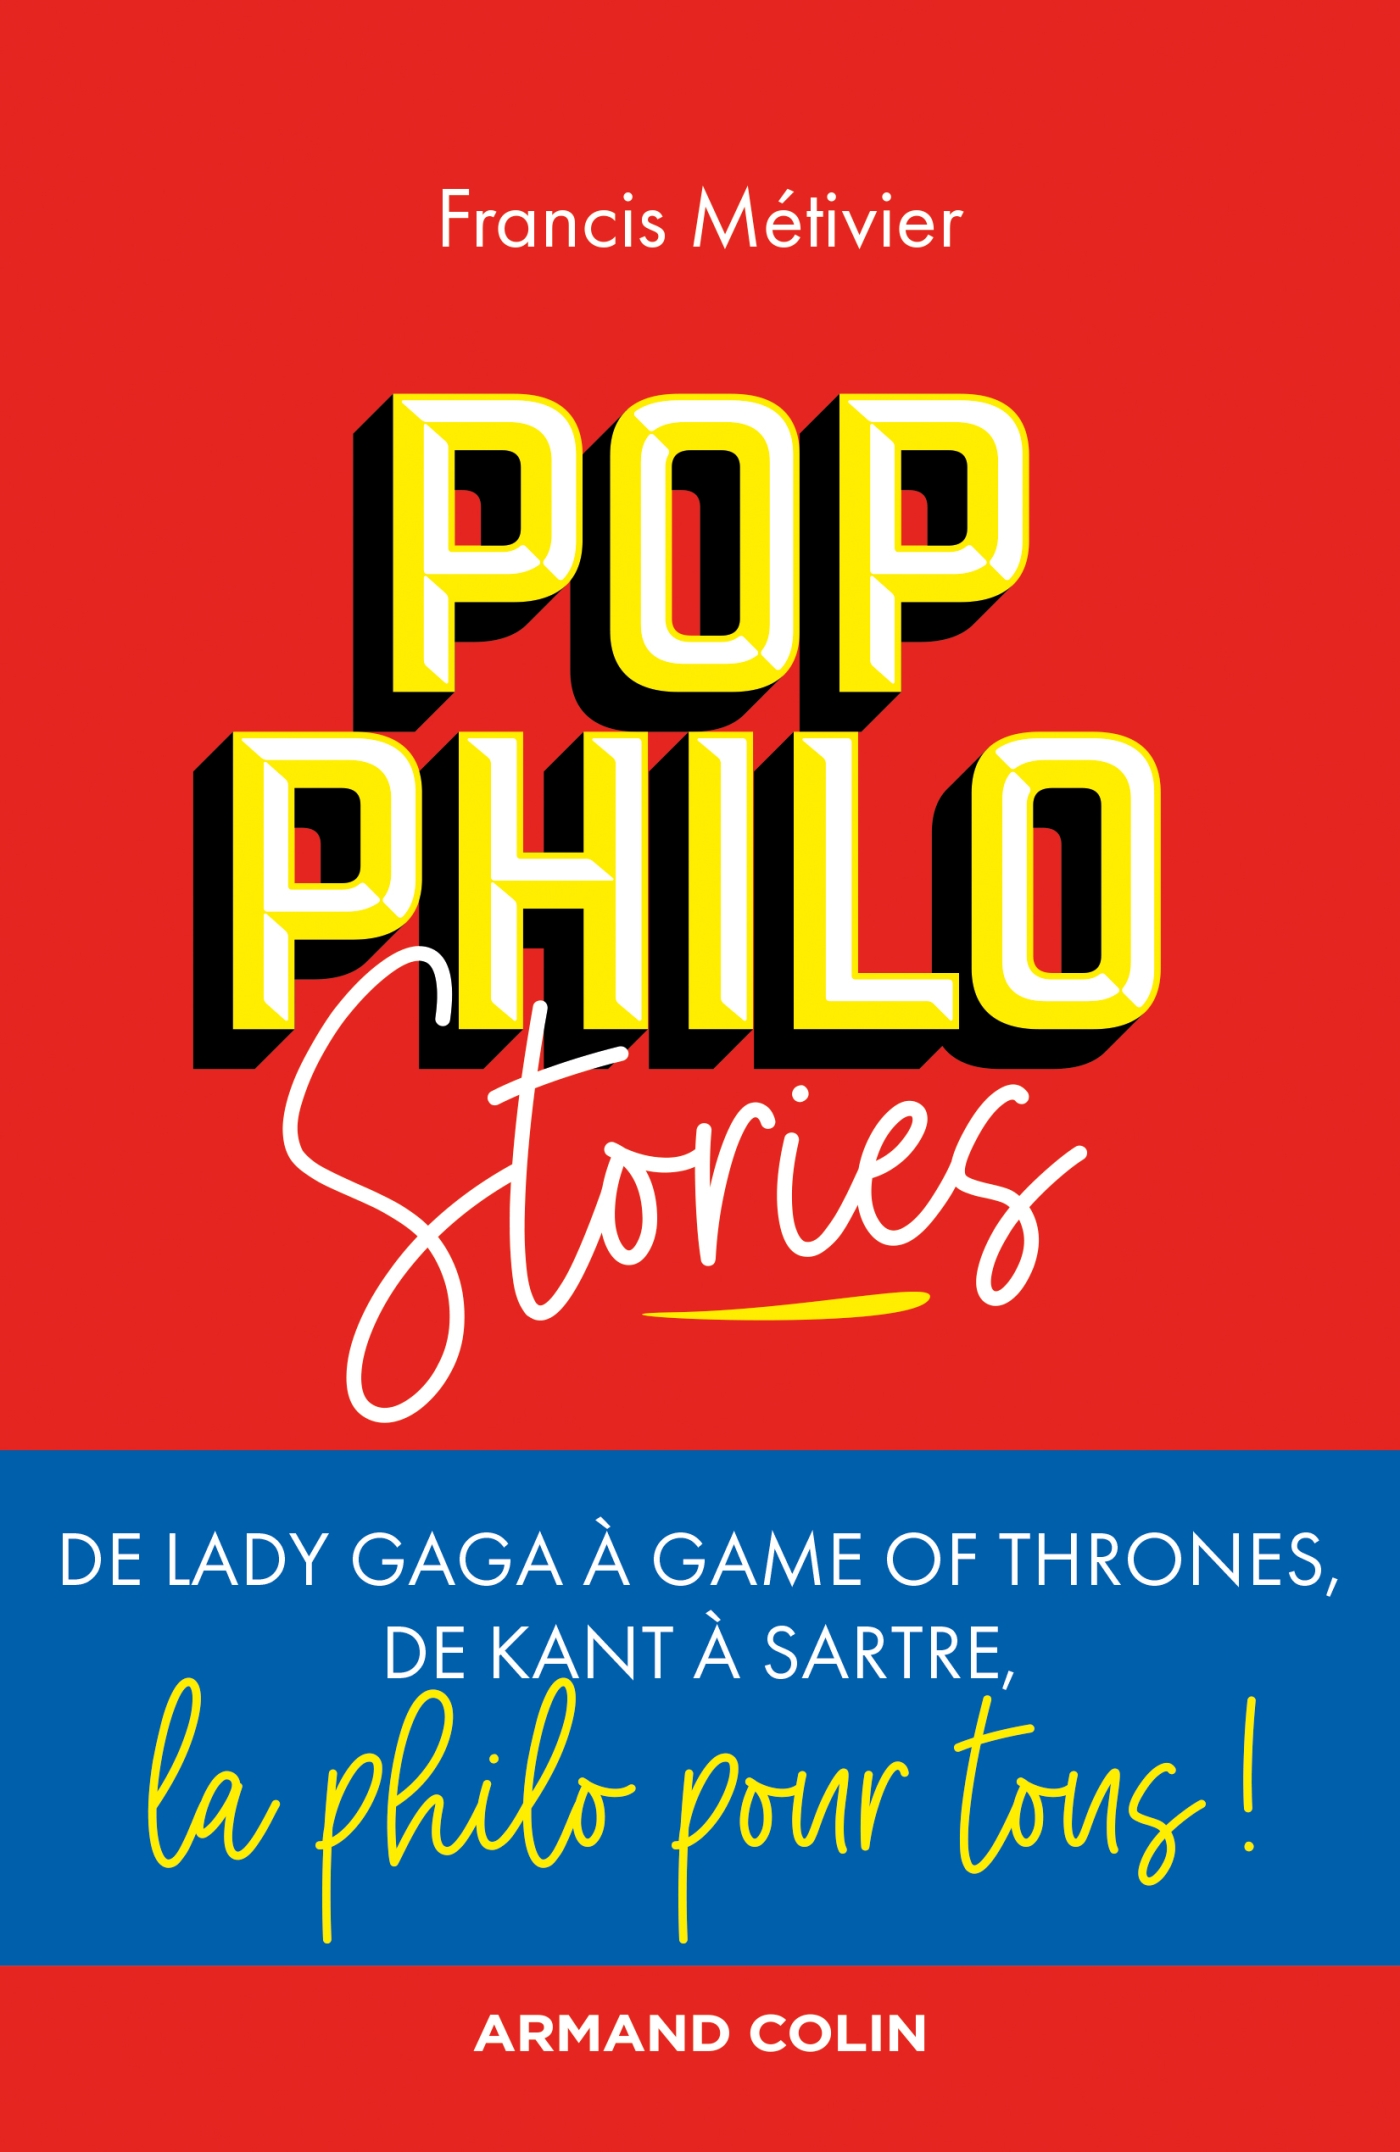 Pop philo Stories | Métivier, Francis. Auteur